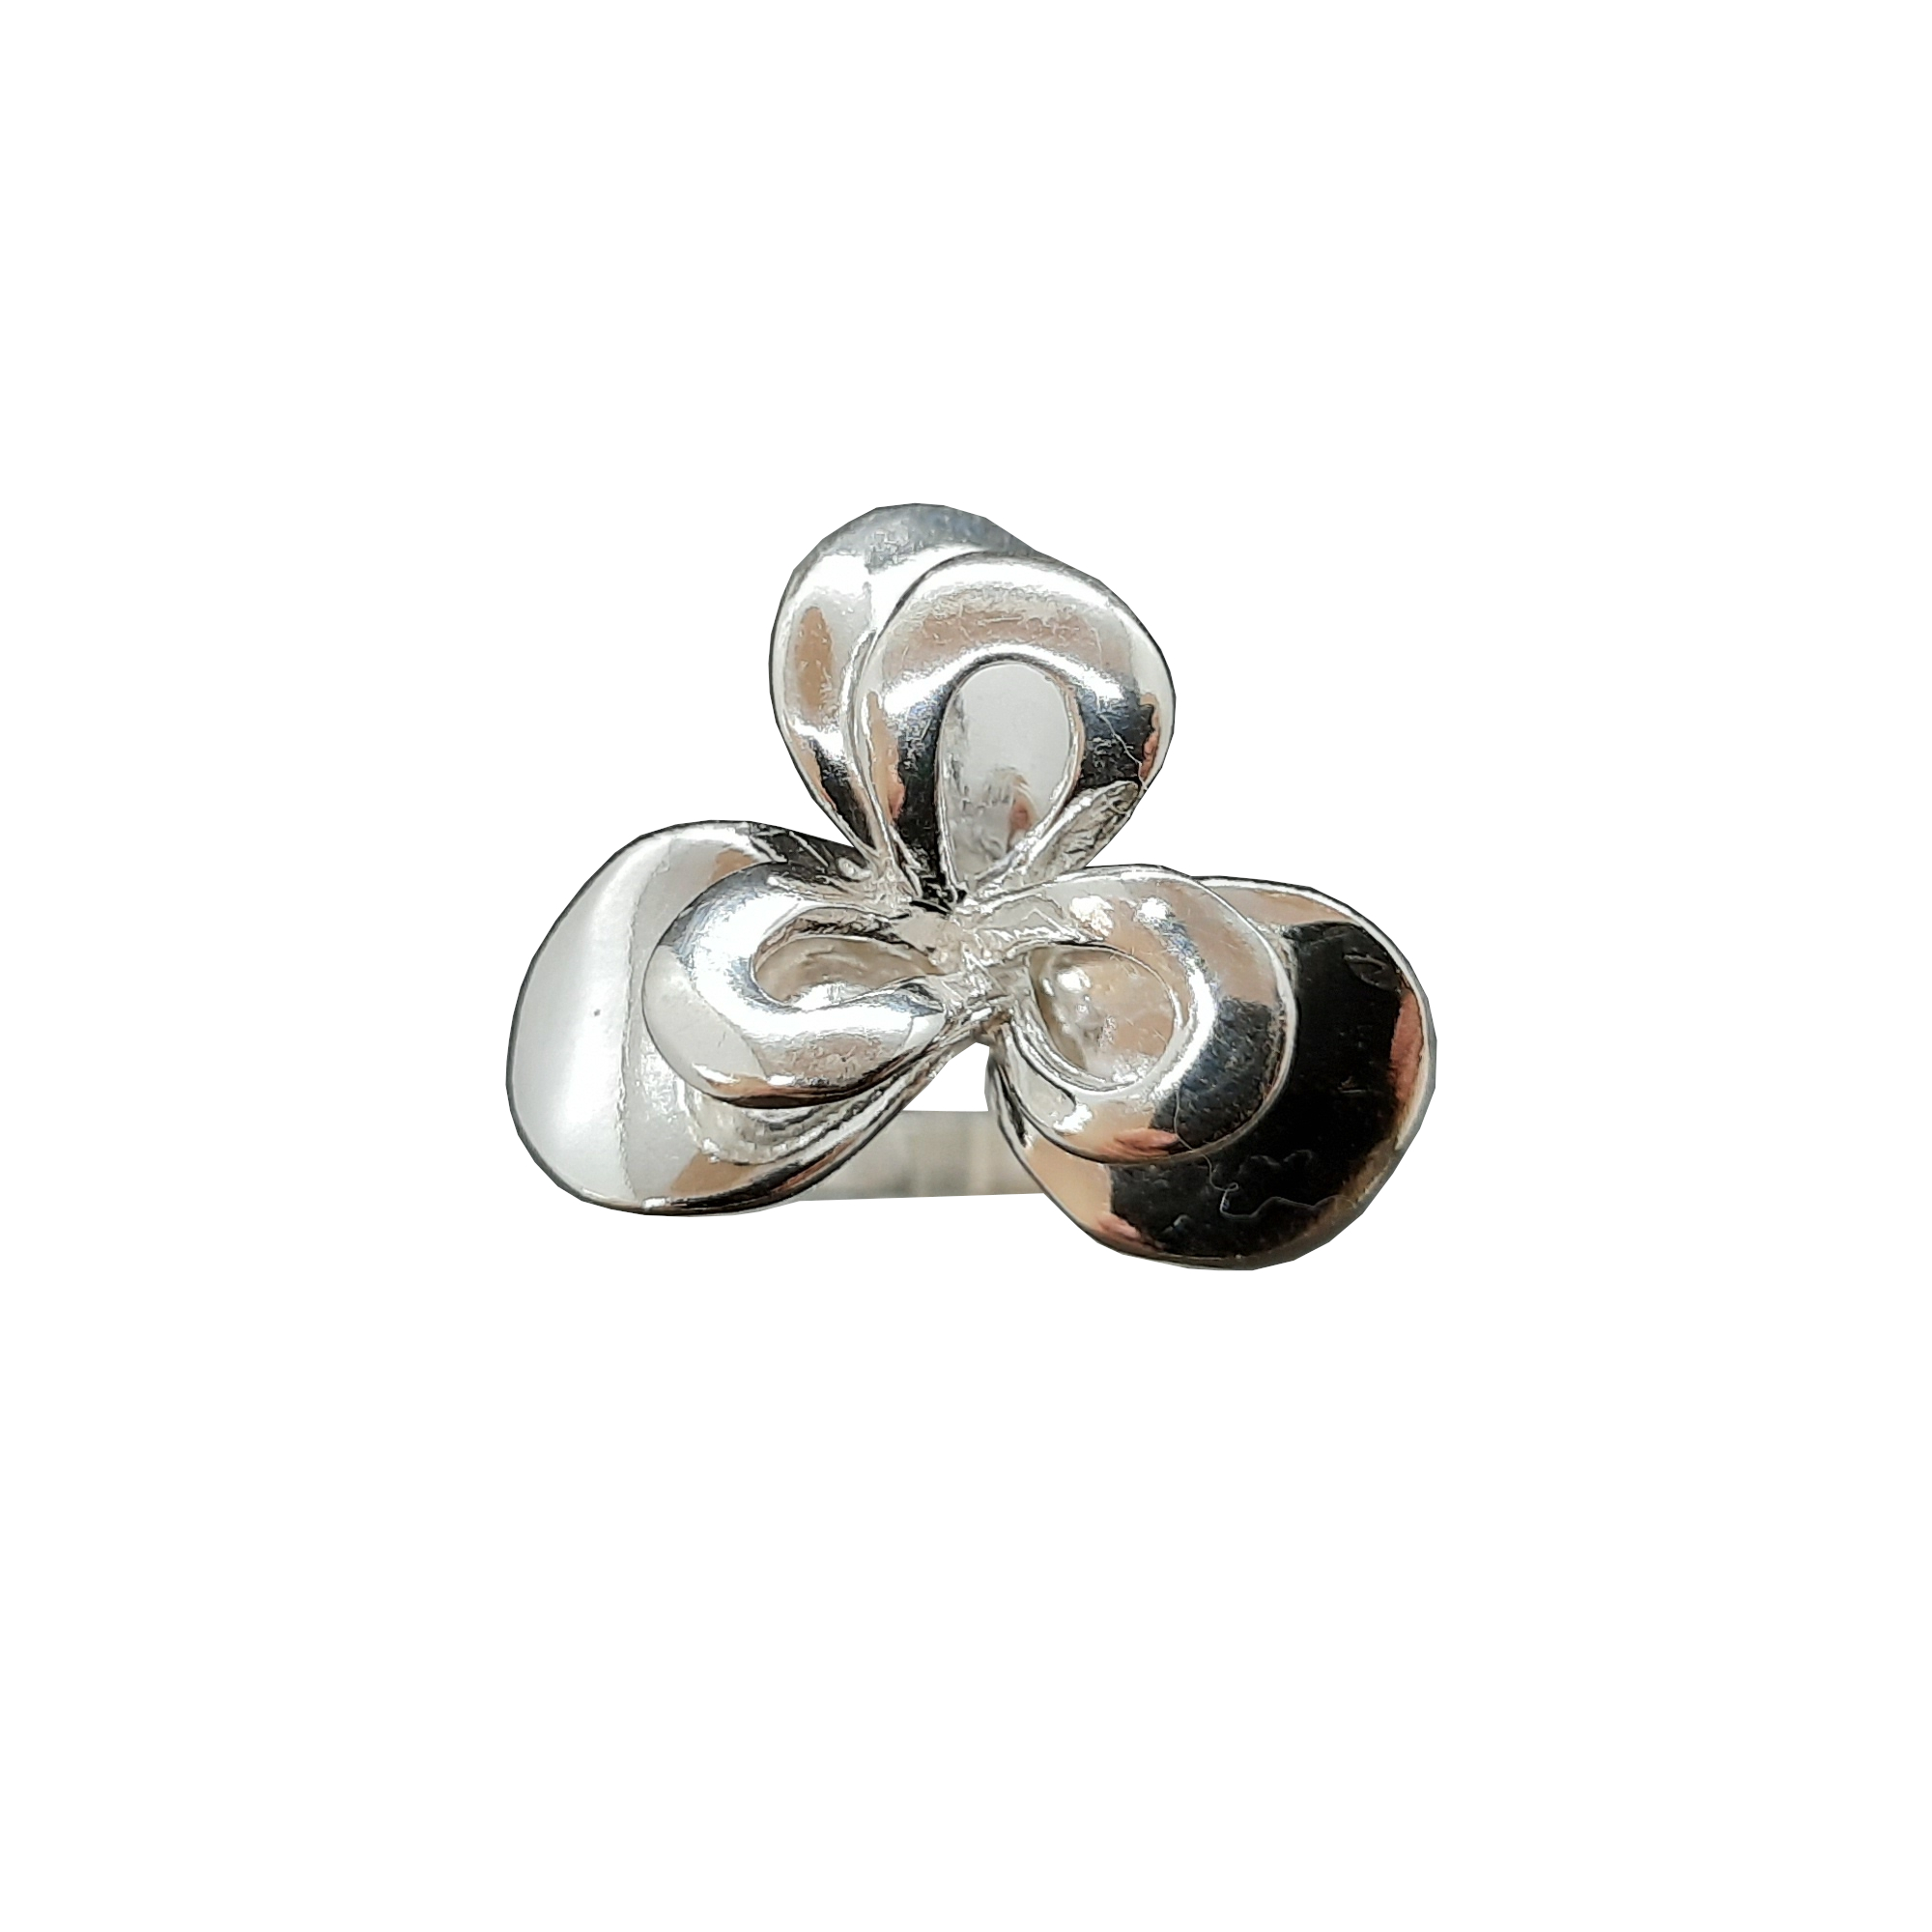 Silver ring - R002157